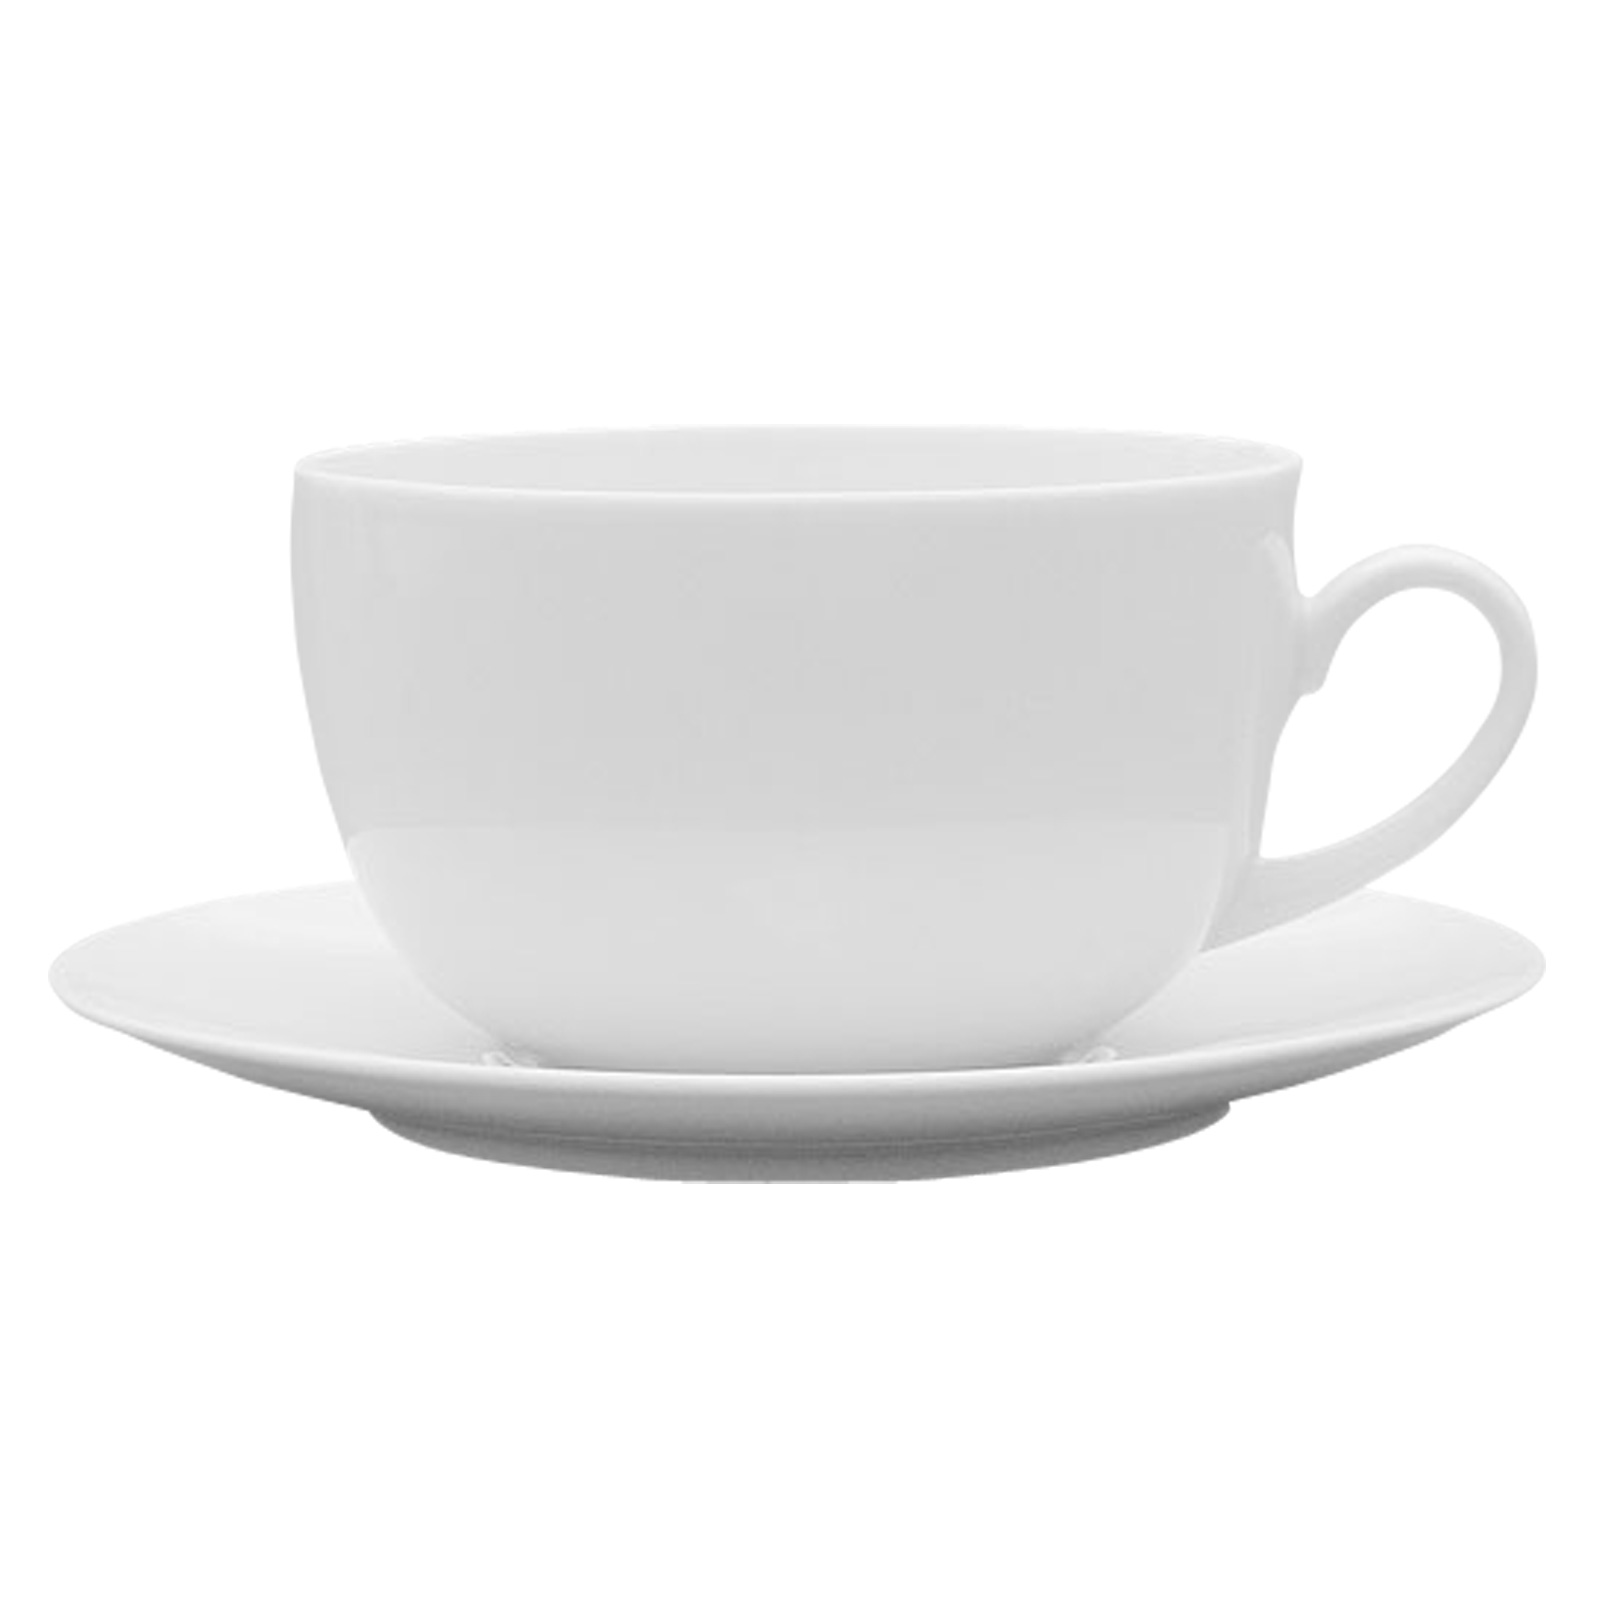 Set of 24 Sonia Tea Saucers by Lubiana